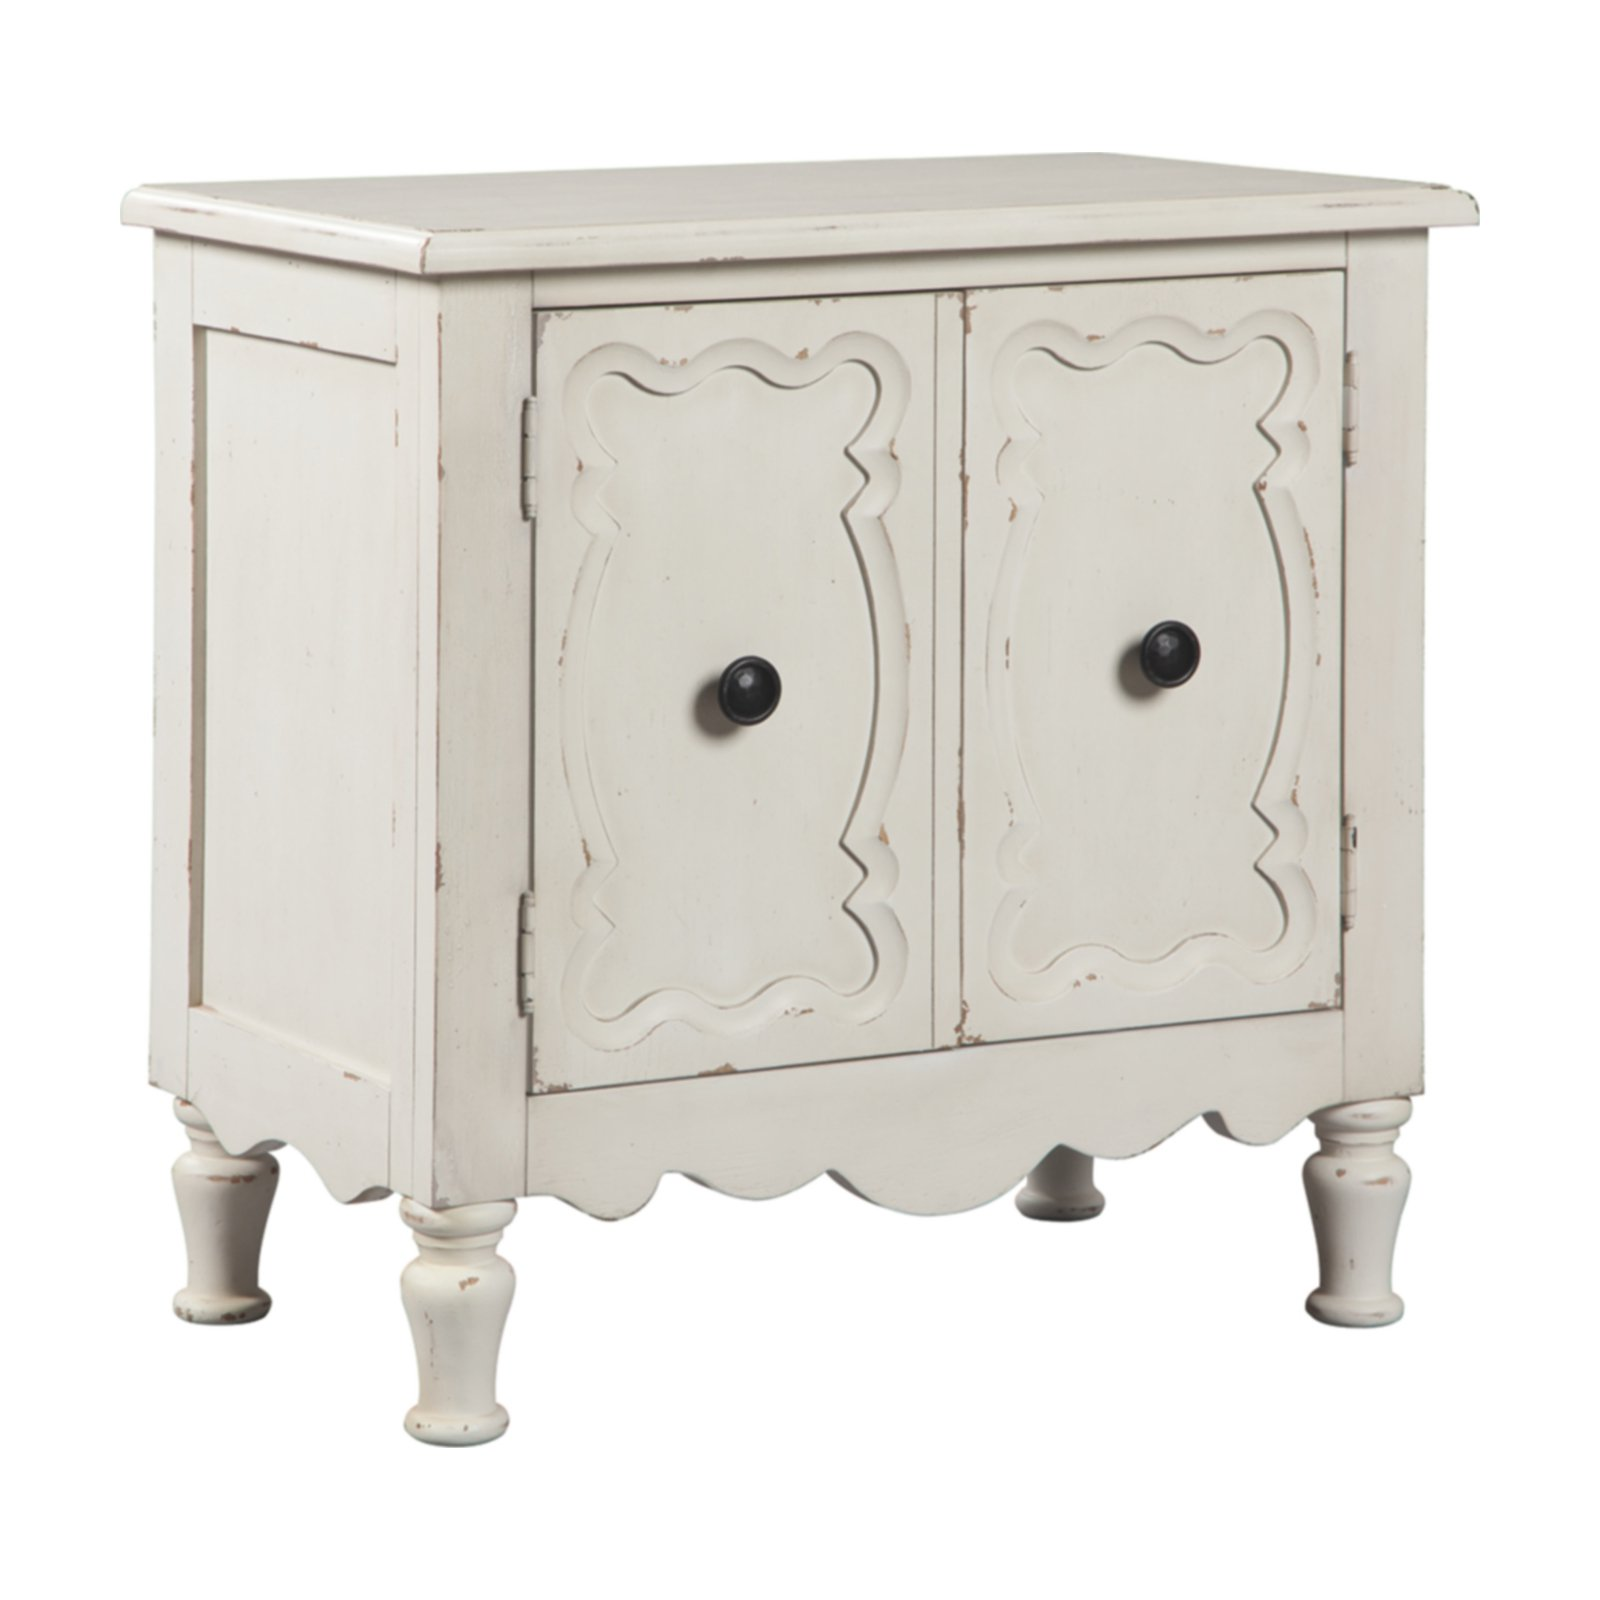 Signature Design by Ashley Loumont Farmhouse Accent Cabinet